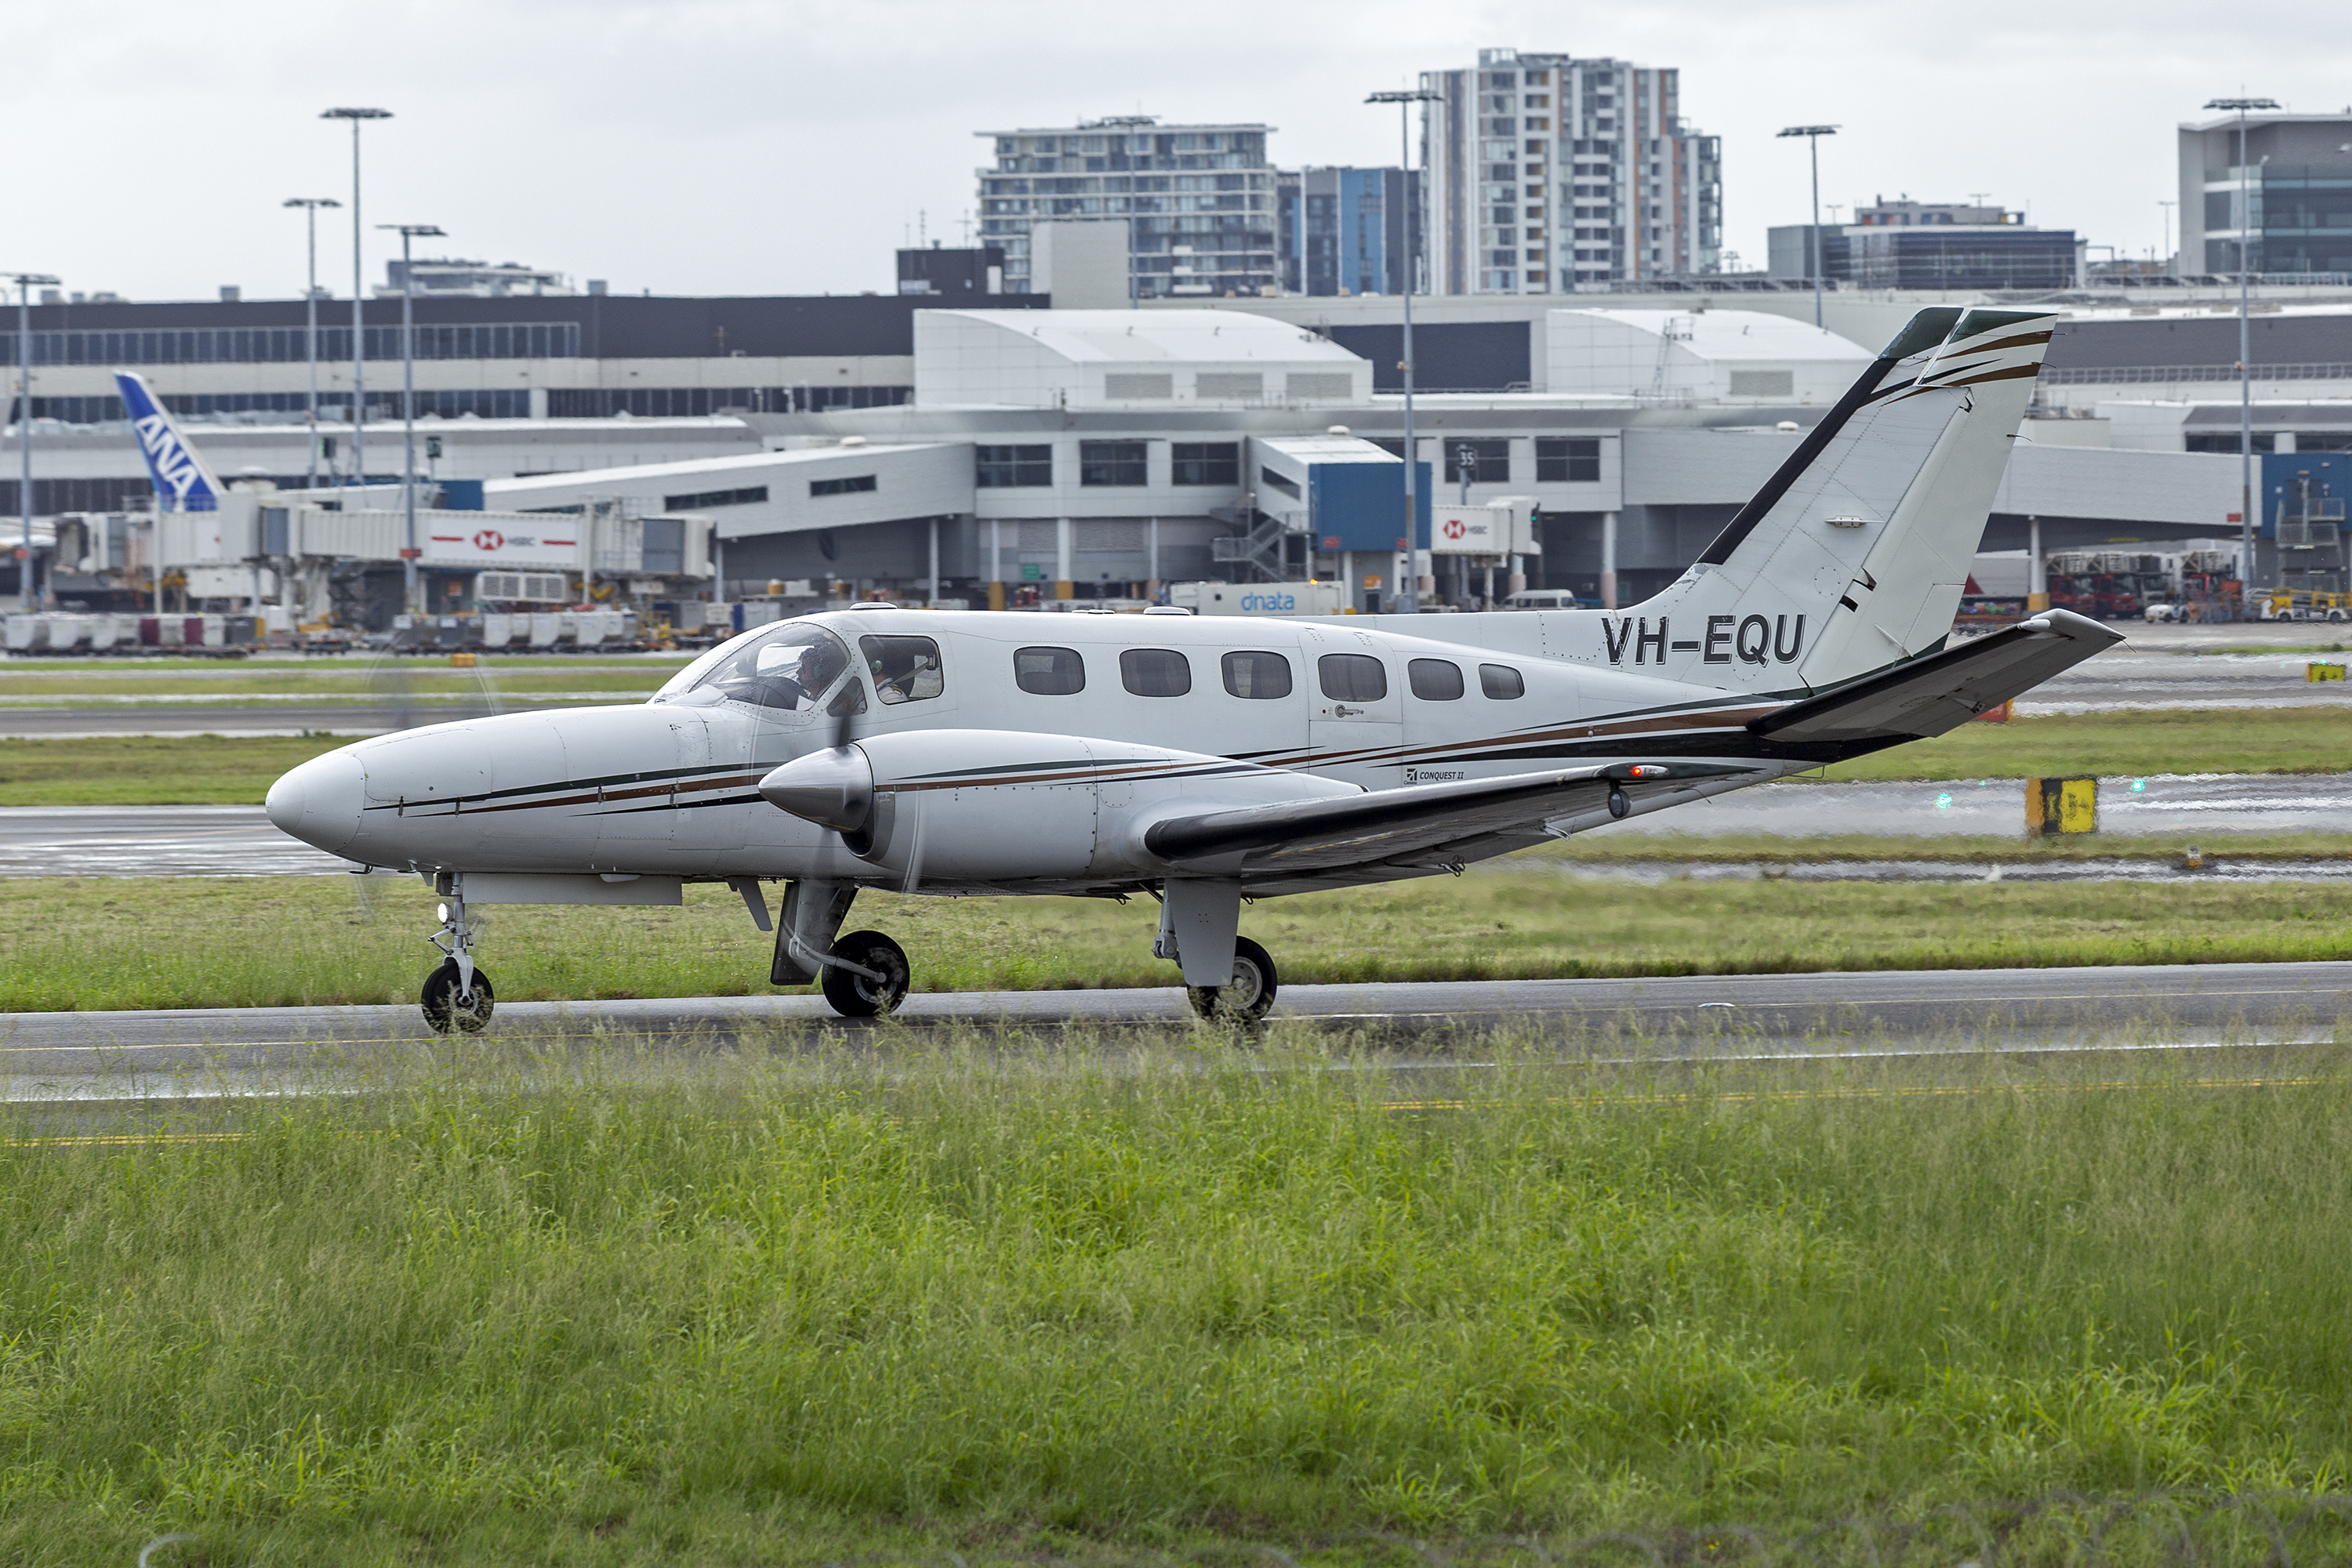 File:Airspeed Aviation (VH-EQU) Cessna 441 Conquest II taxiing at Sydney Airport (2).jpg